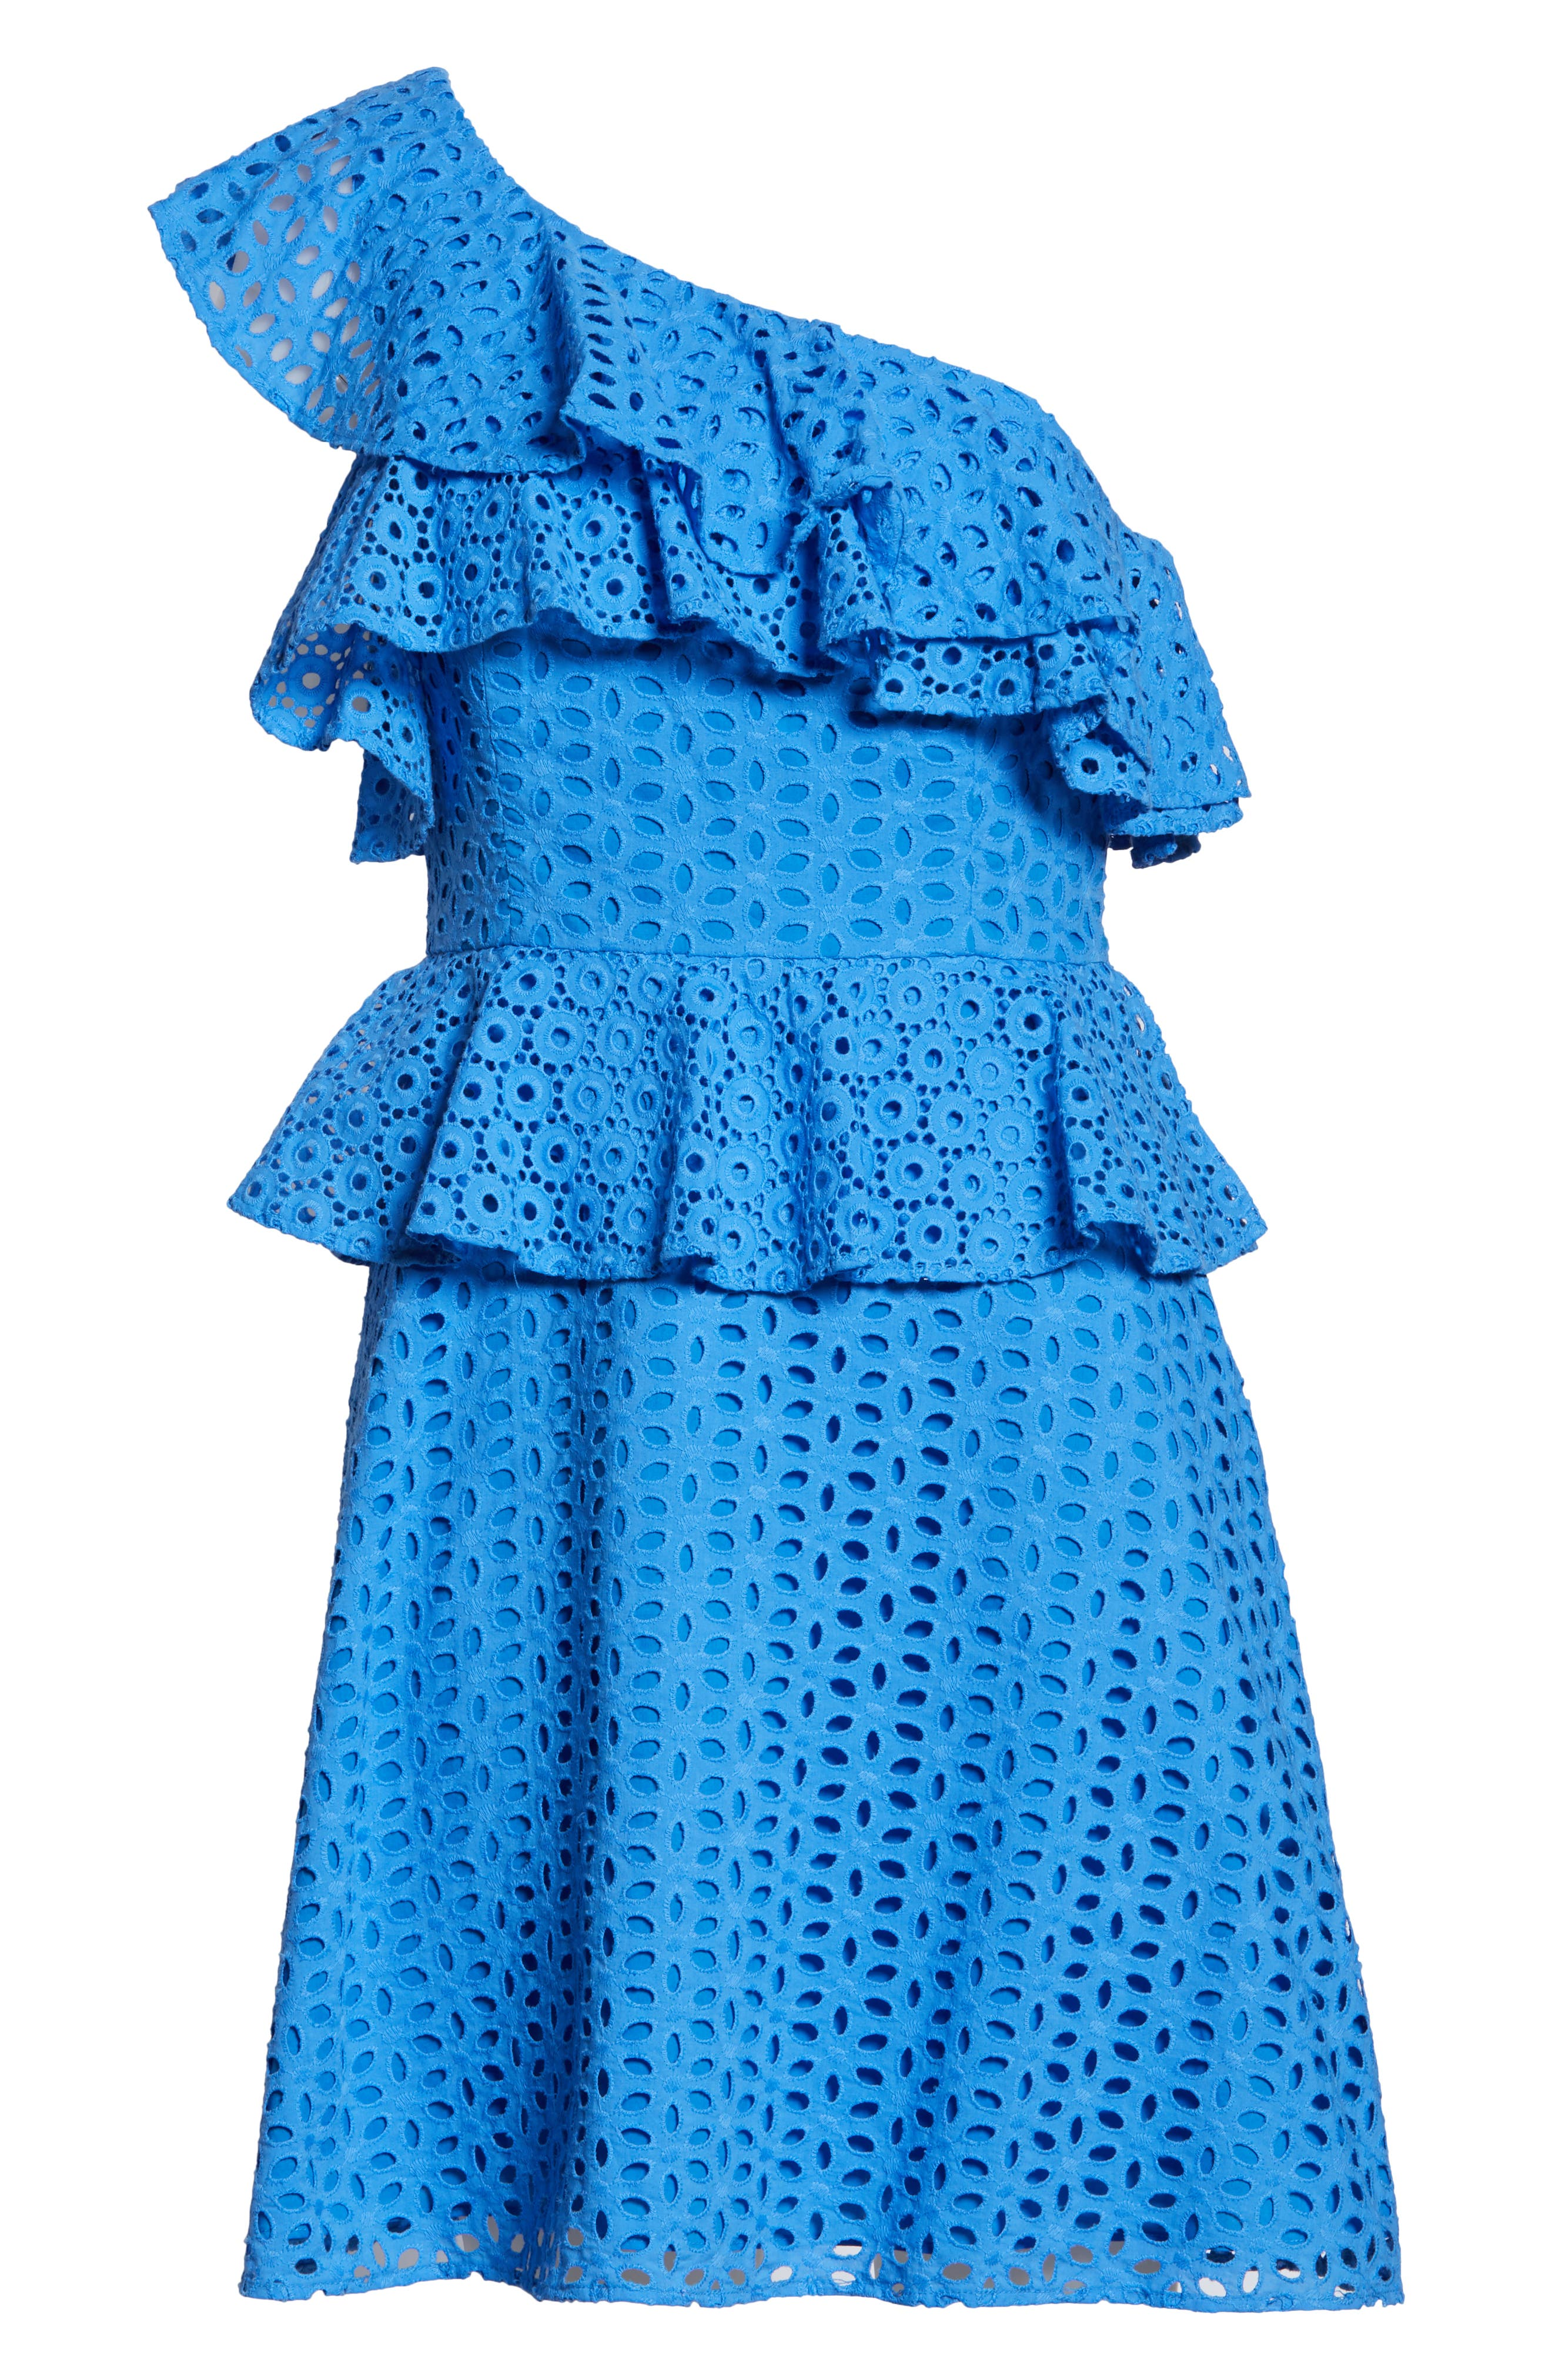 LILLY PULITZER<SUP>®</SUP>, Josey Eyelet One-Shoulder Dress, Alternate thumbnail 6, color, COASTAL BLUE OVAL FLOWER